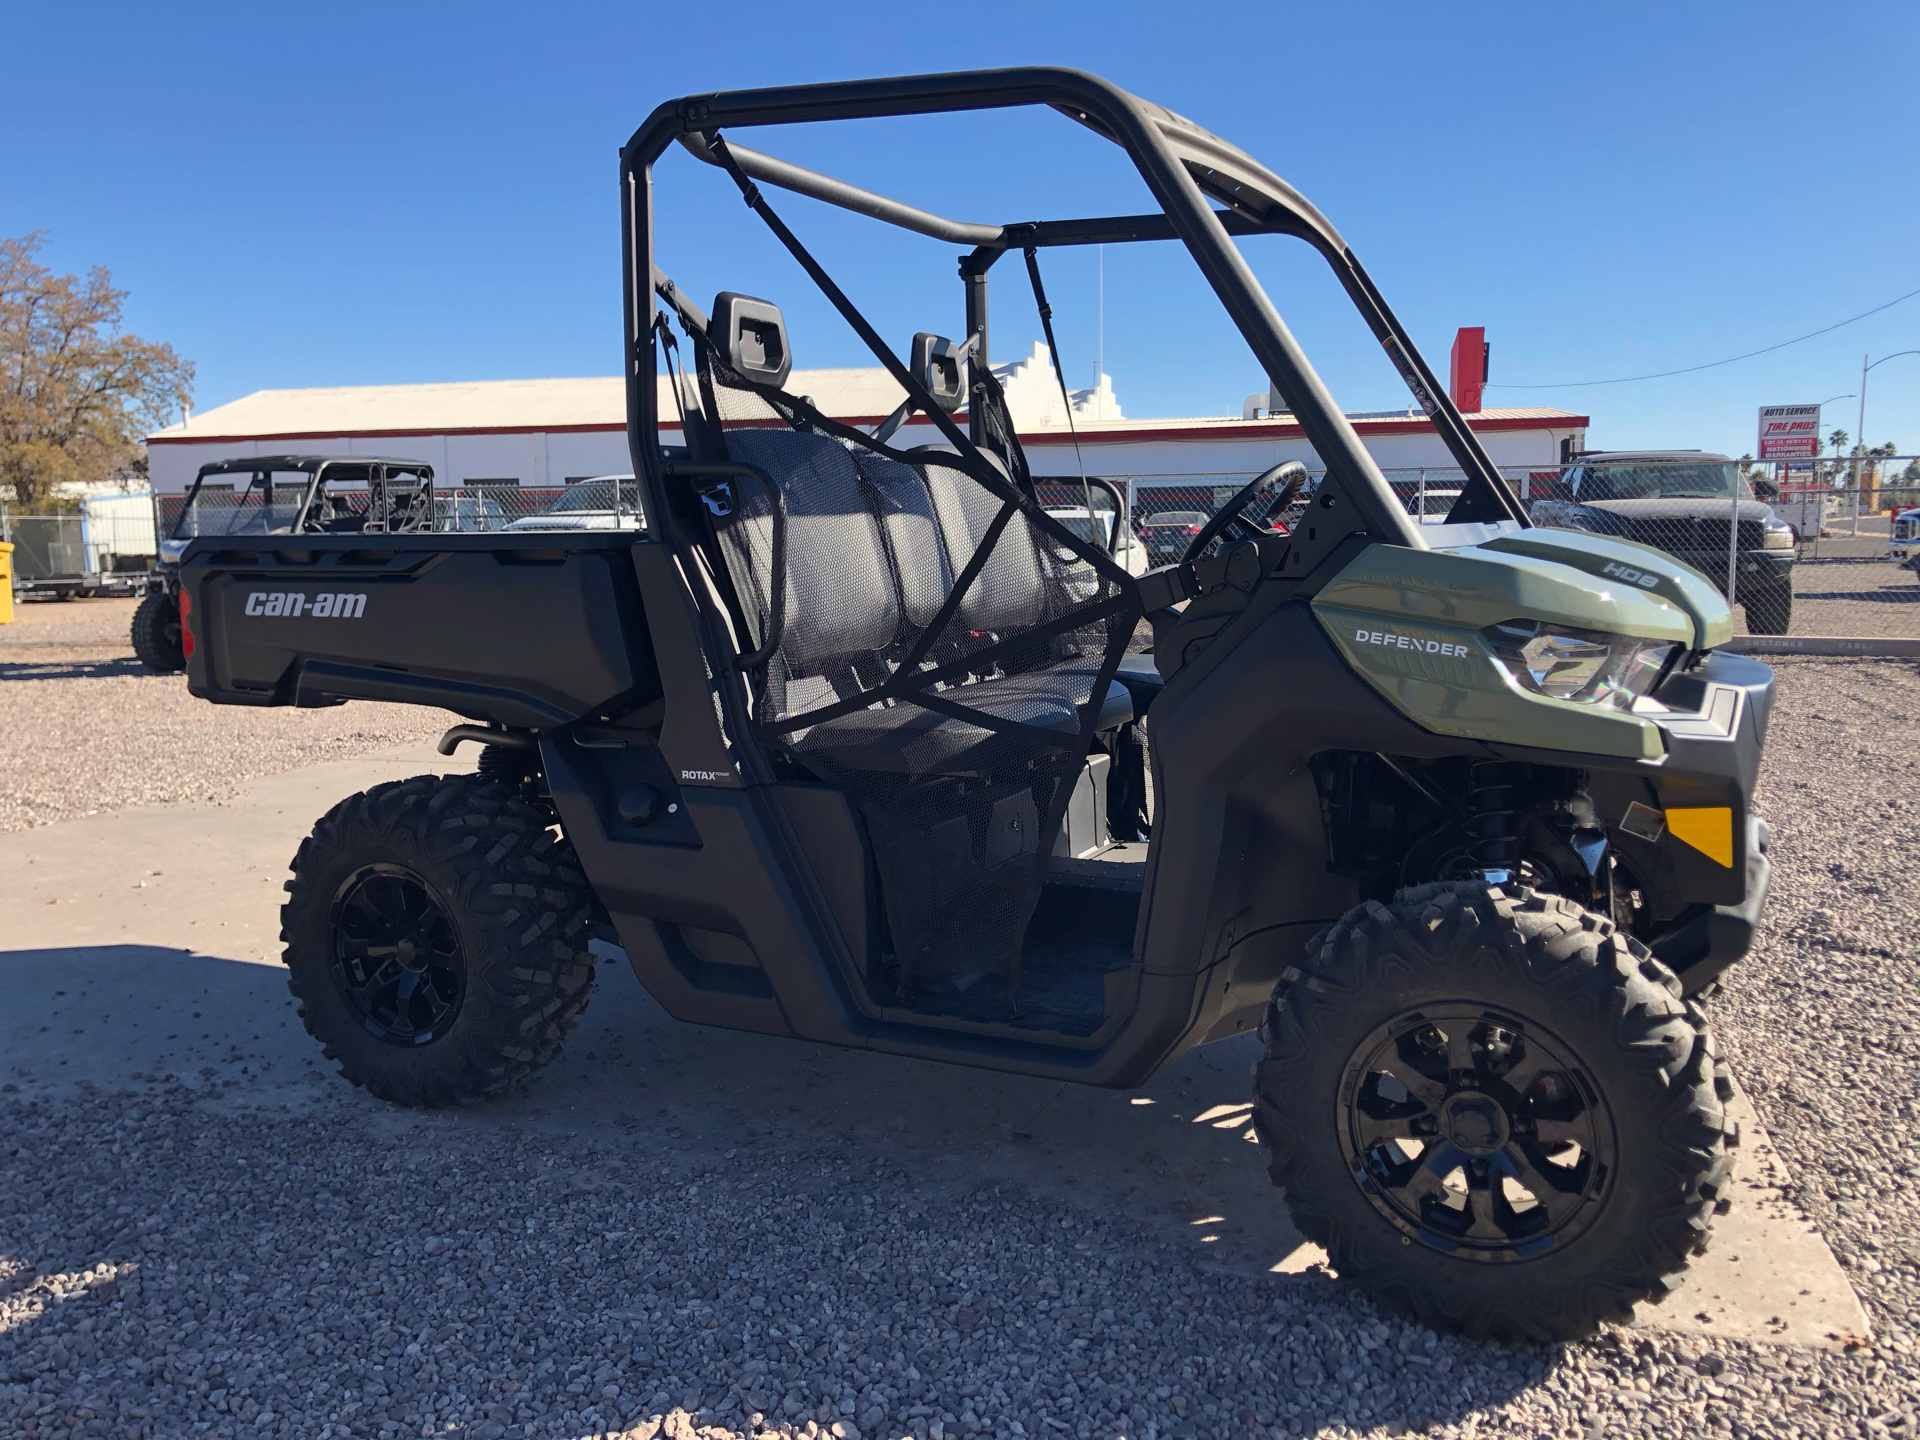 2021 Can-Am Defender DPS HD8 in Safford, Arizona - Photo 3